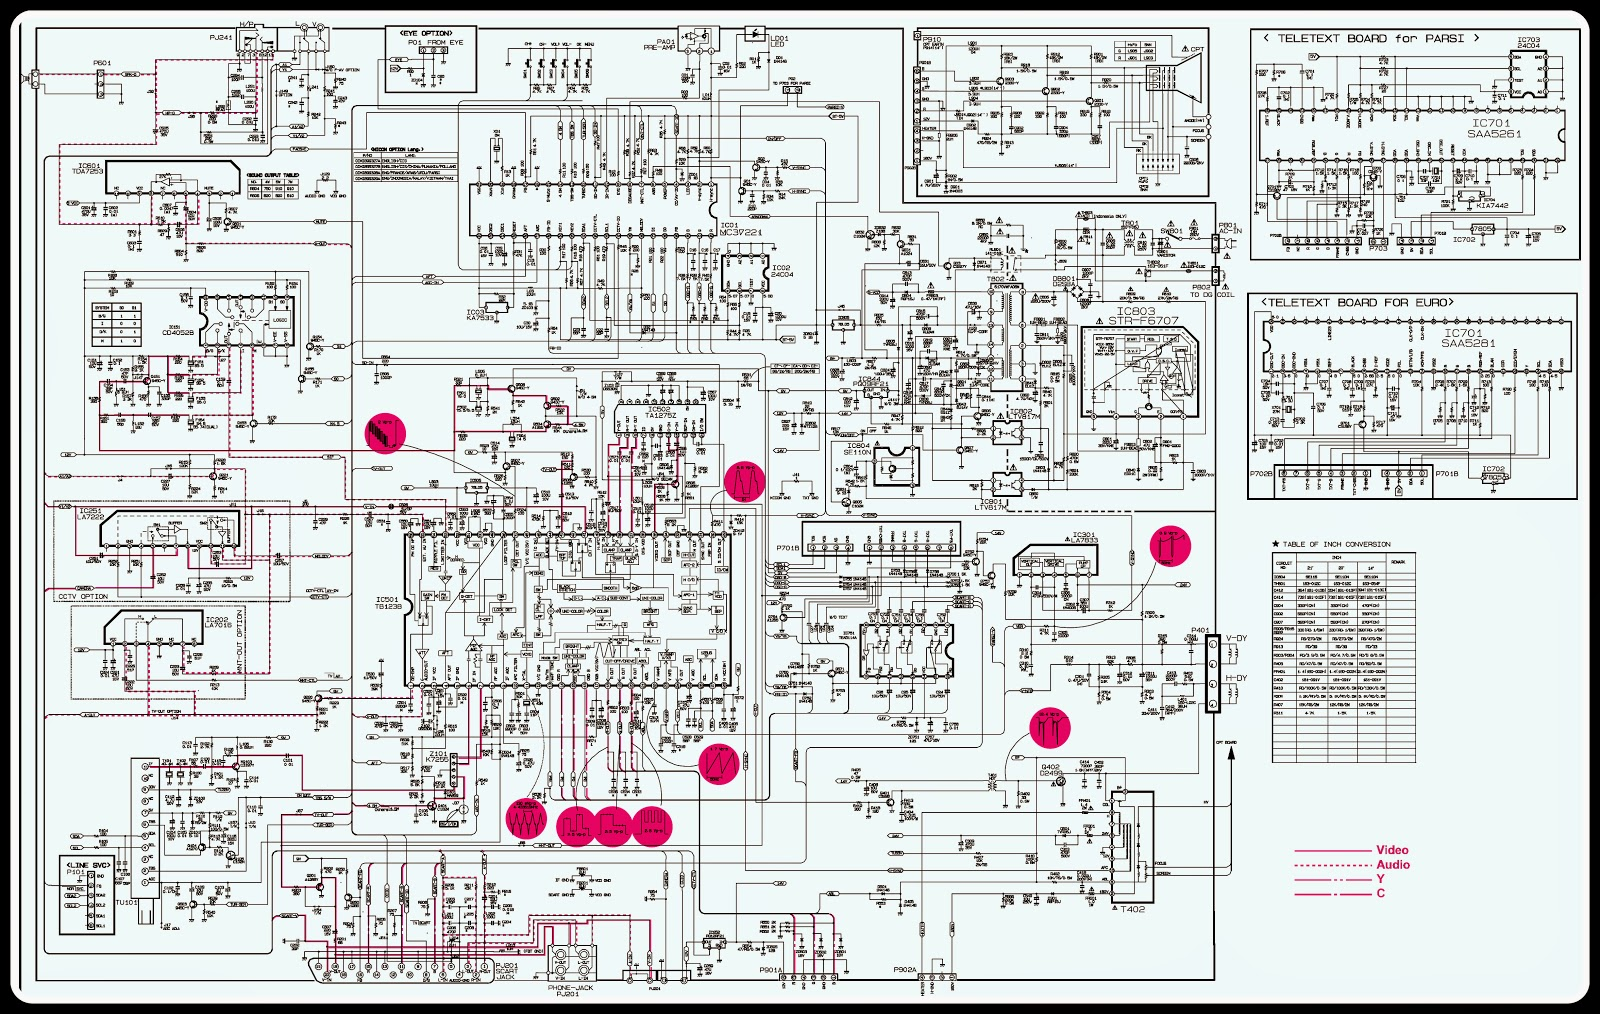 medium resolution of led tv circuit diagram pdf wiring diagram post led tv circuit diagram pdf led tv circuit diagrams